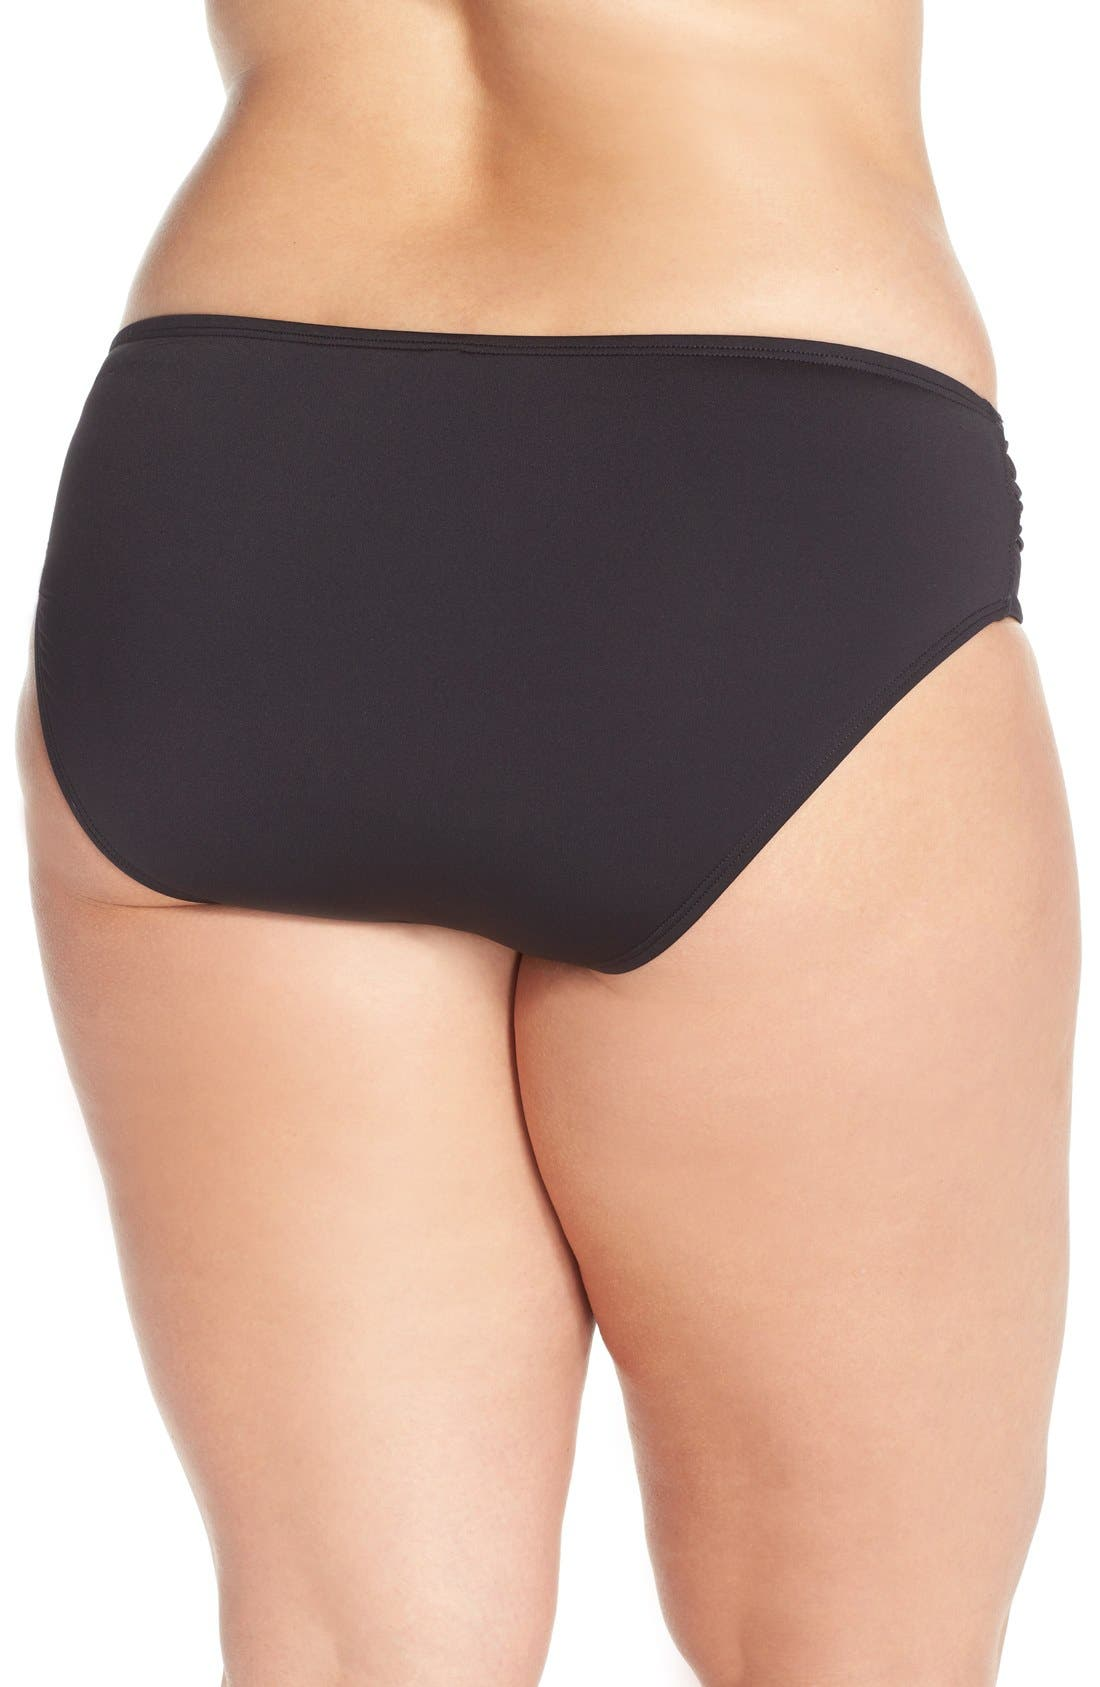 Alternate Image 2  - Tommy Bahama 'Pearl' Bikini Bottoms (Plus Size) (Nordstrom Exclusive)